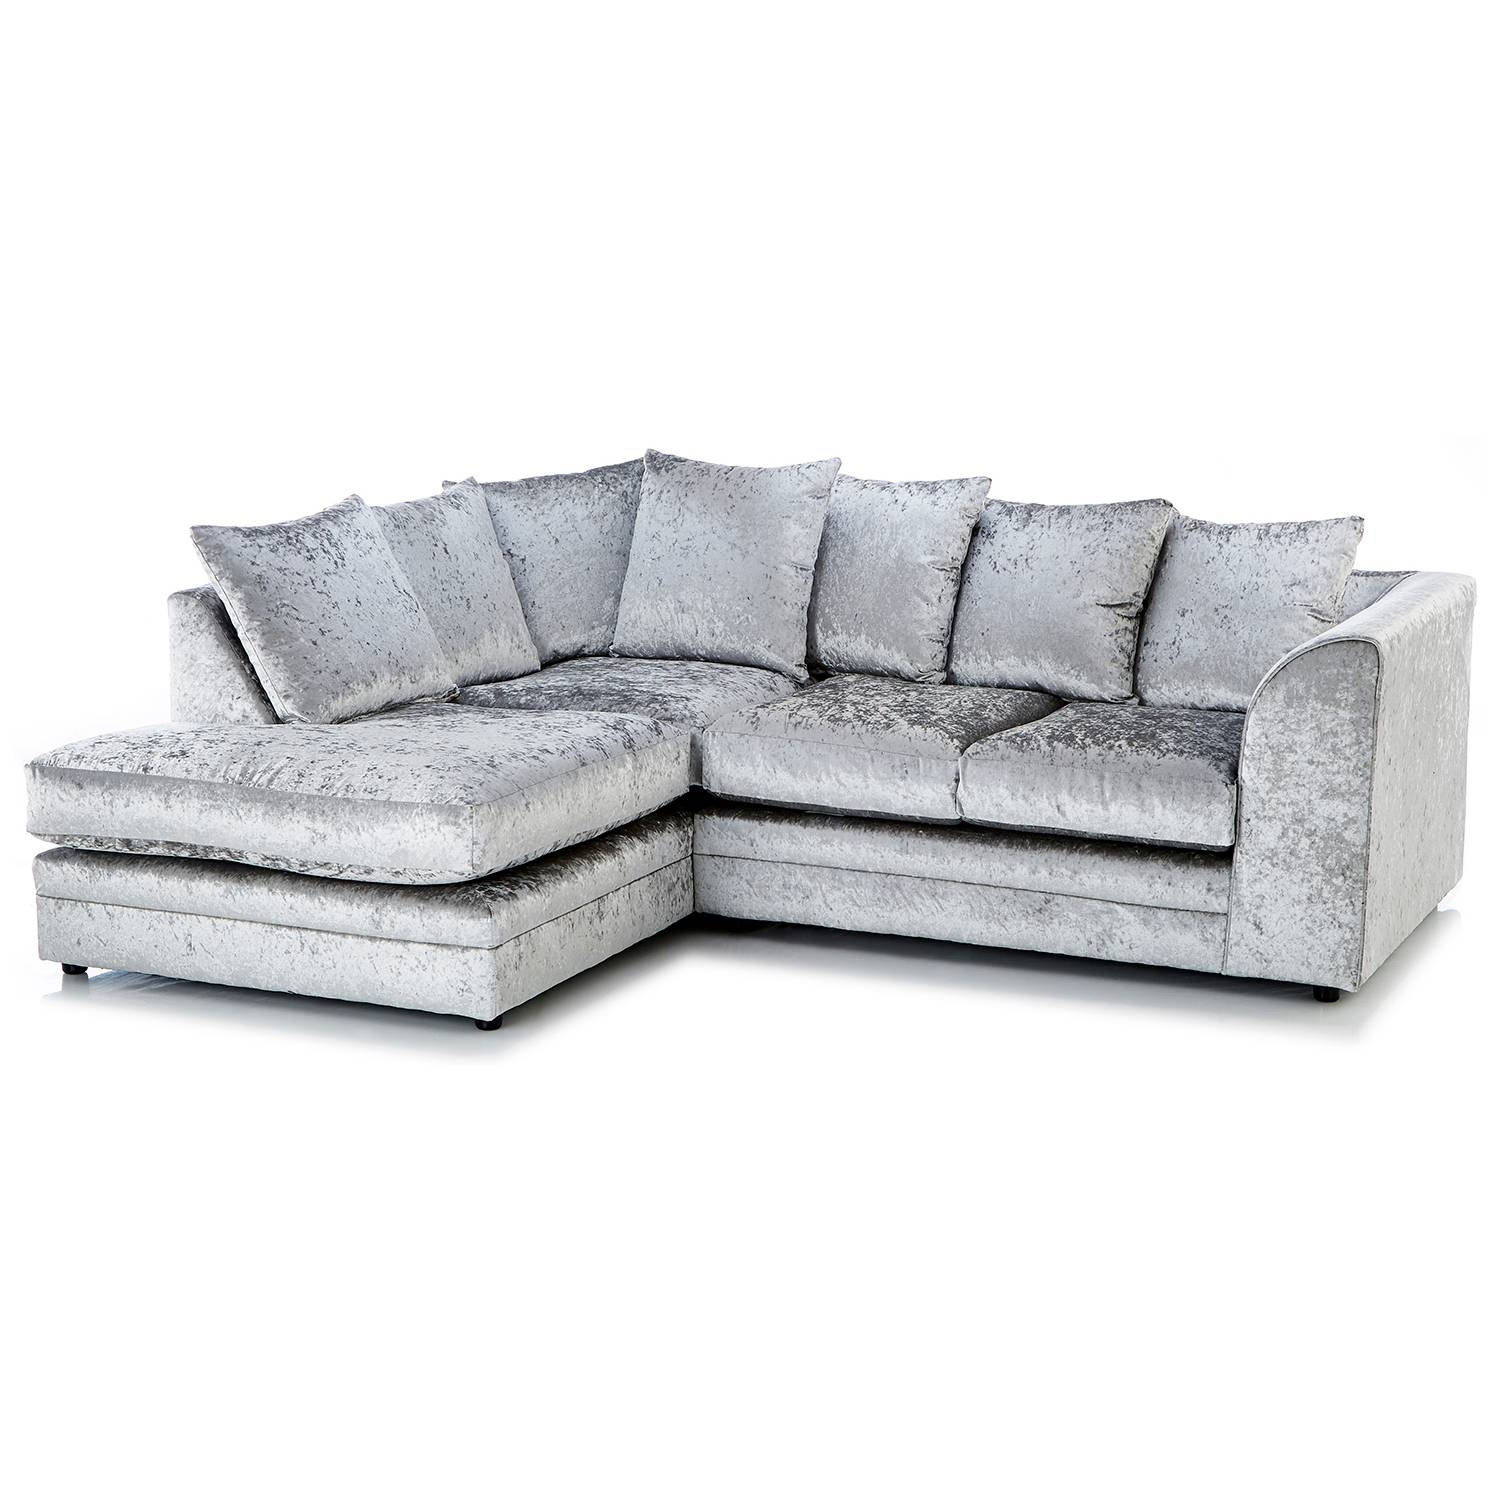 Crushed Velvet Furniture | Sofas, Beds, Chairs, Cushions Regarding Corner Sofa Chairs (View 12 of 30)